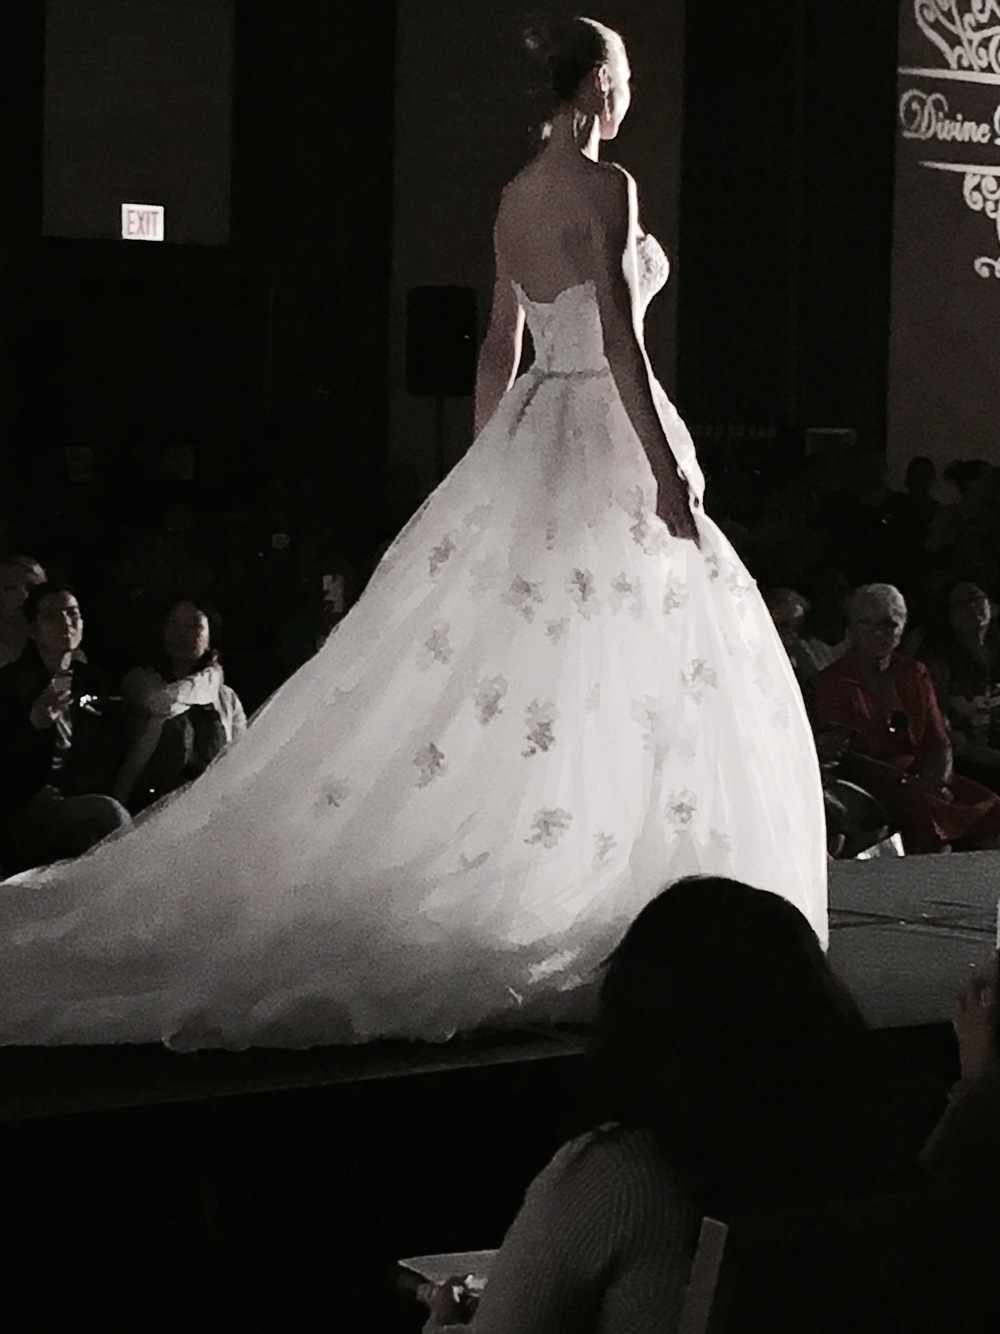 NK Bride Luxury Bridal ExpoIMG_0032.jpg